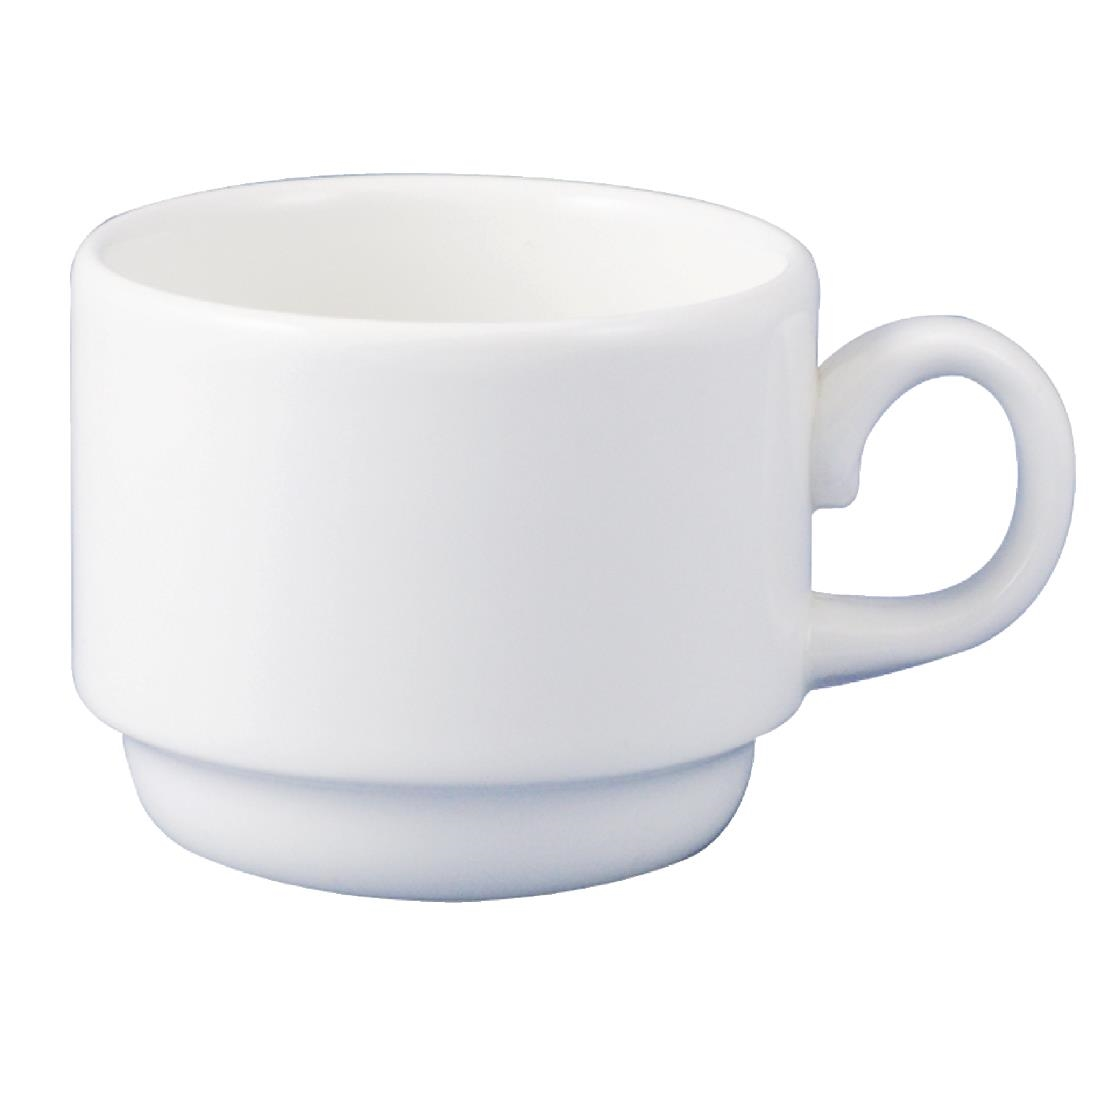 Image of Dudson Classic After Dinner Stackable Cups 130ml (Pack of 36) Pack of 36